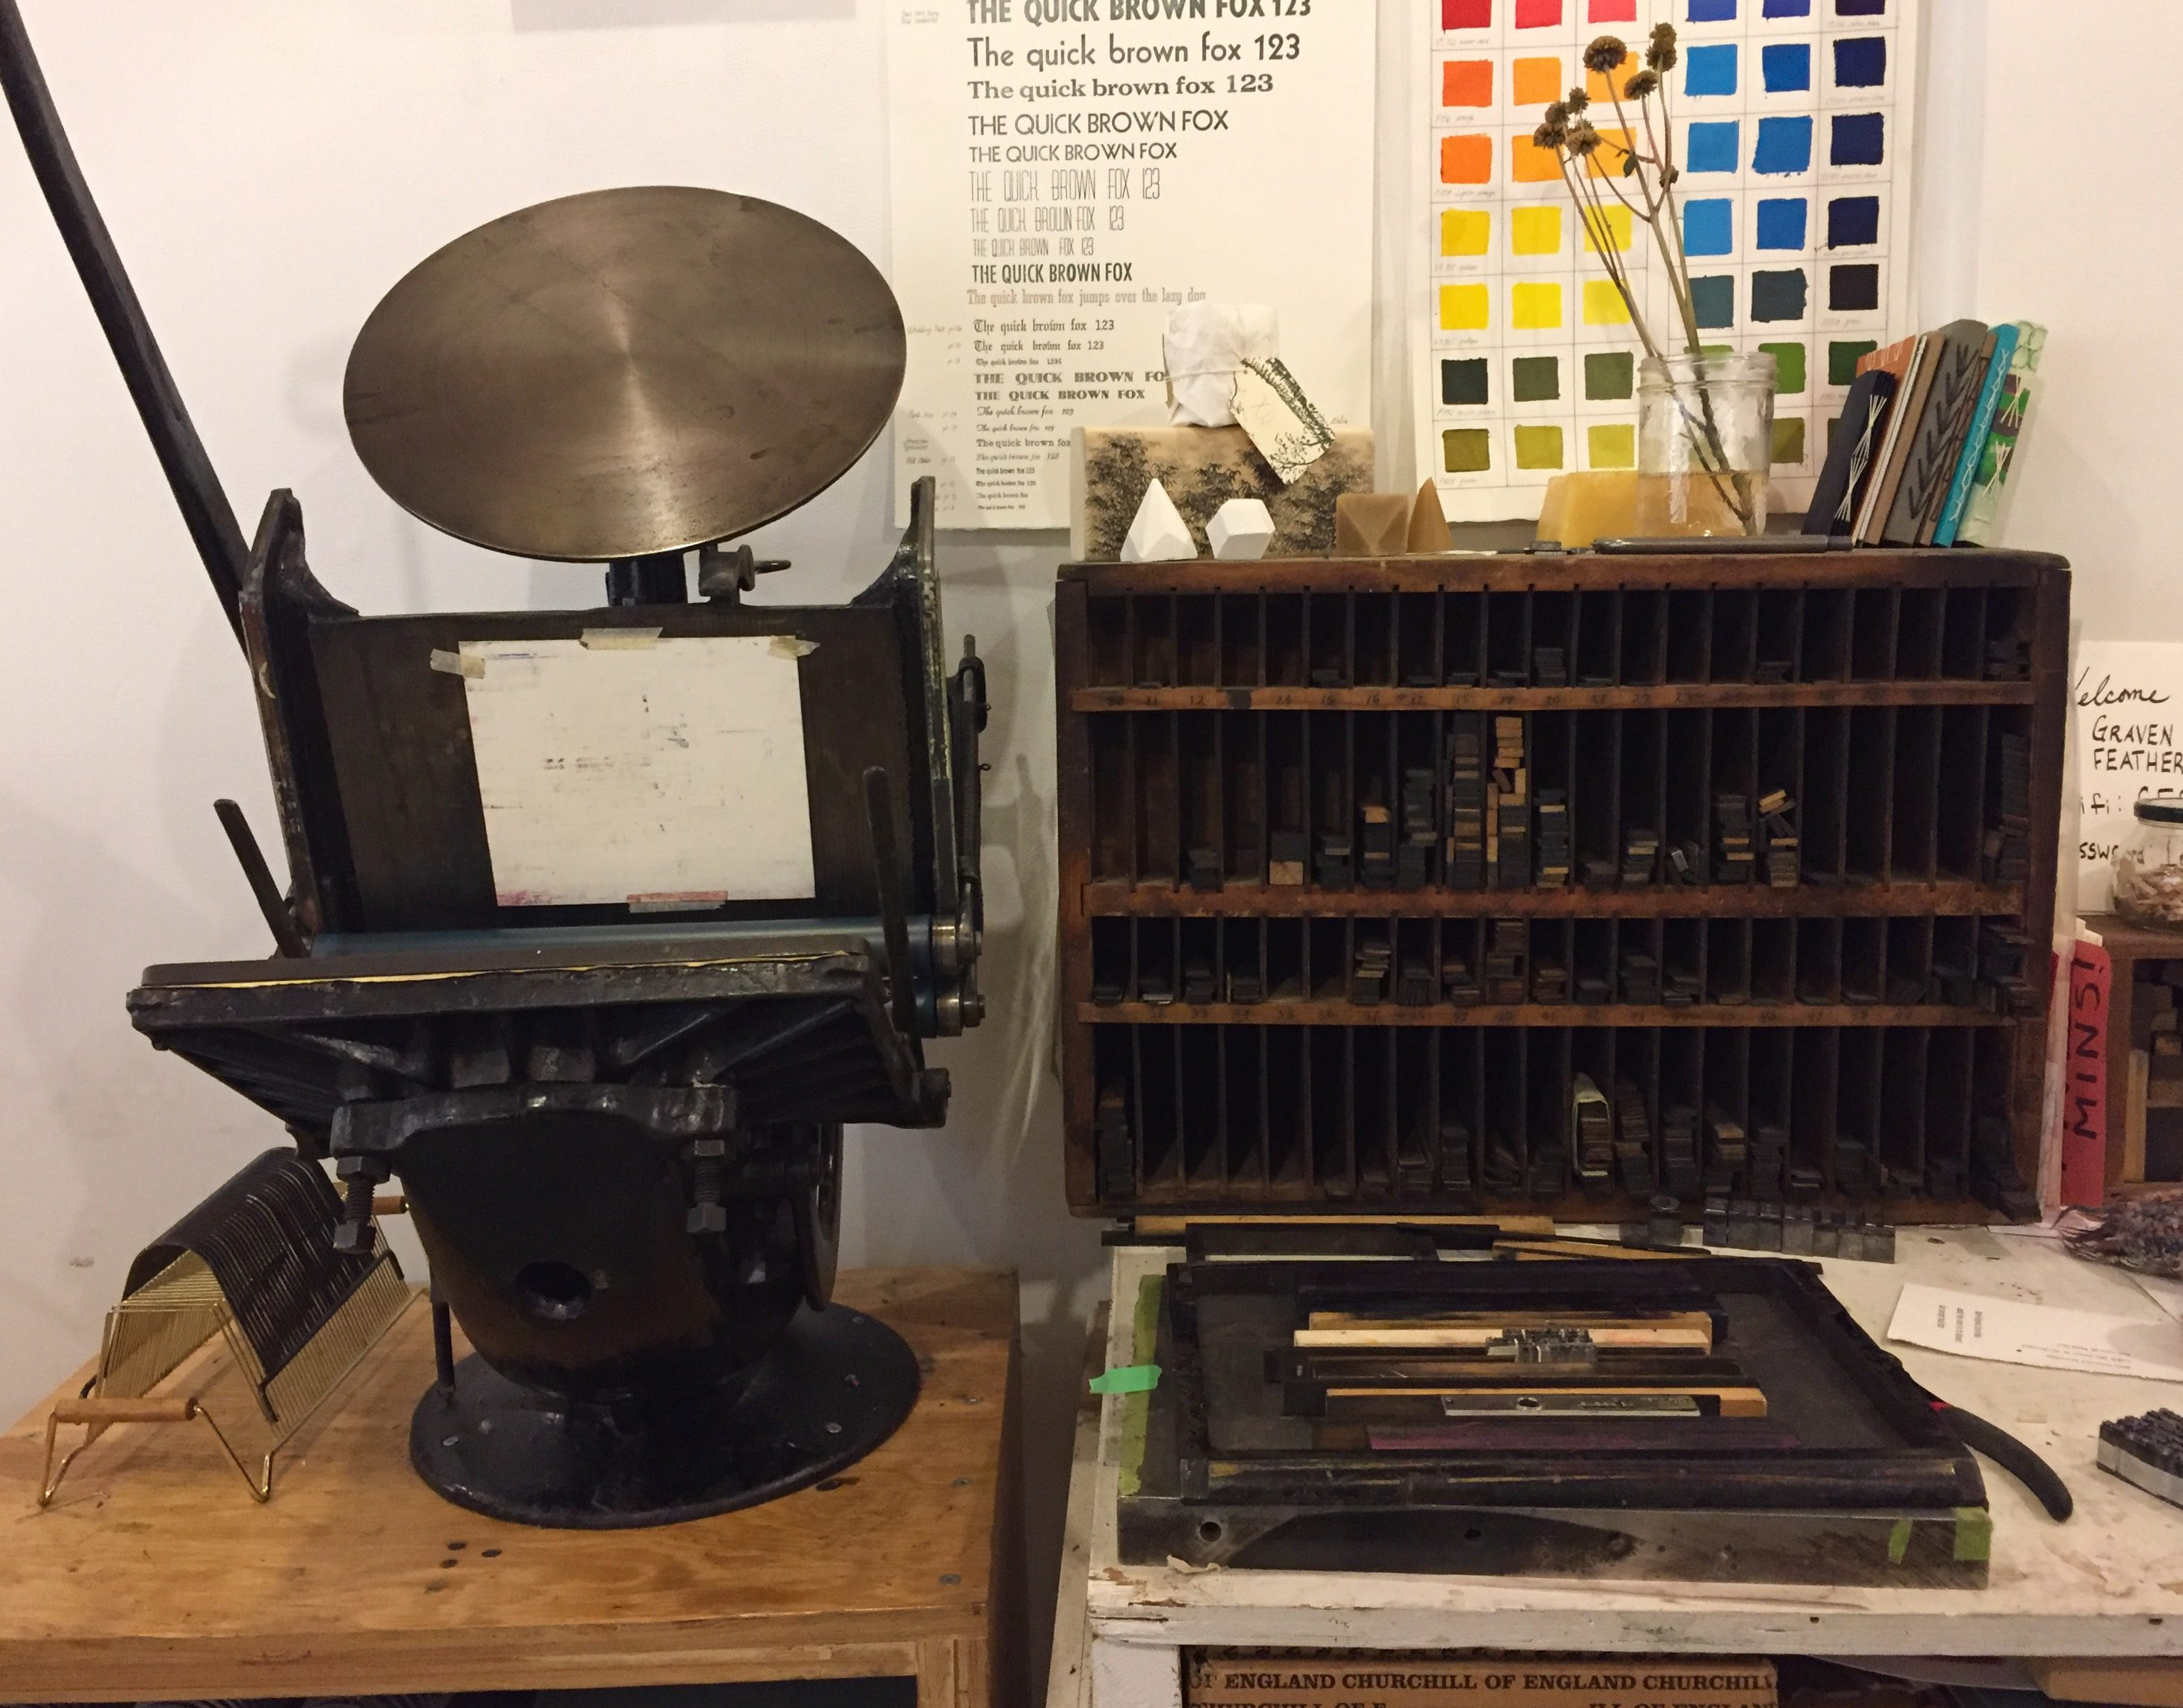 Letterpress machine sitting on desk with posters behind it.